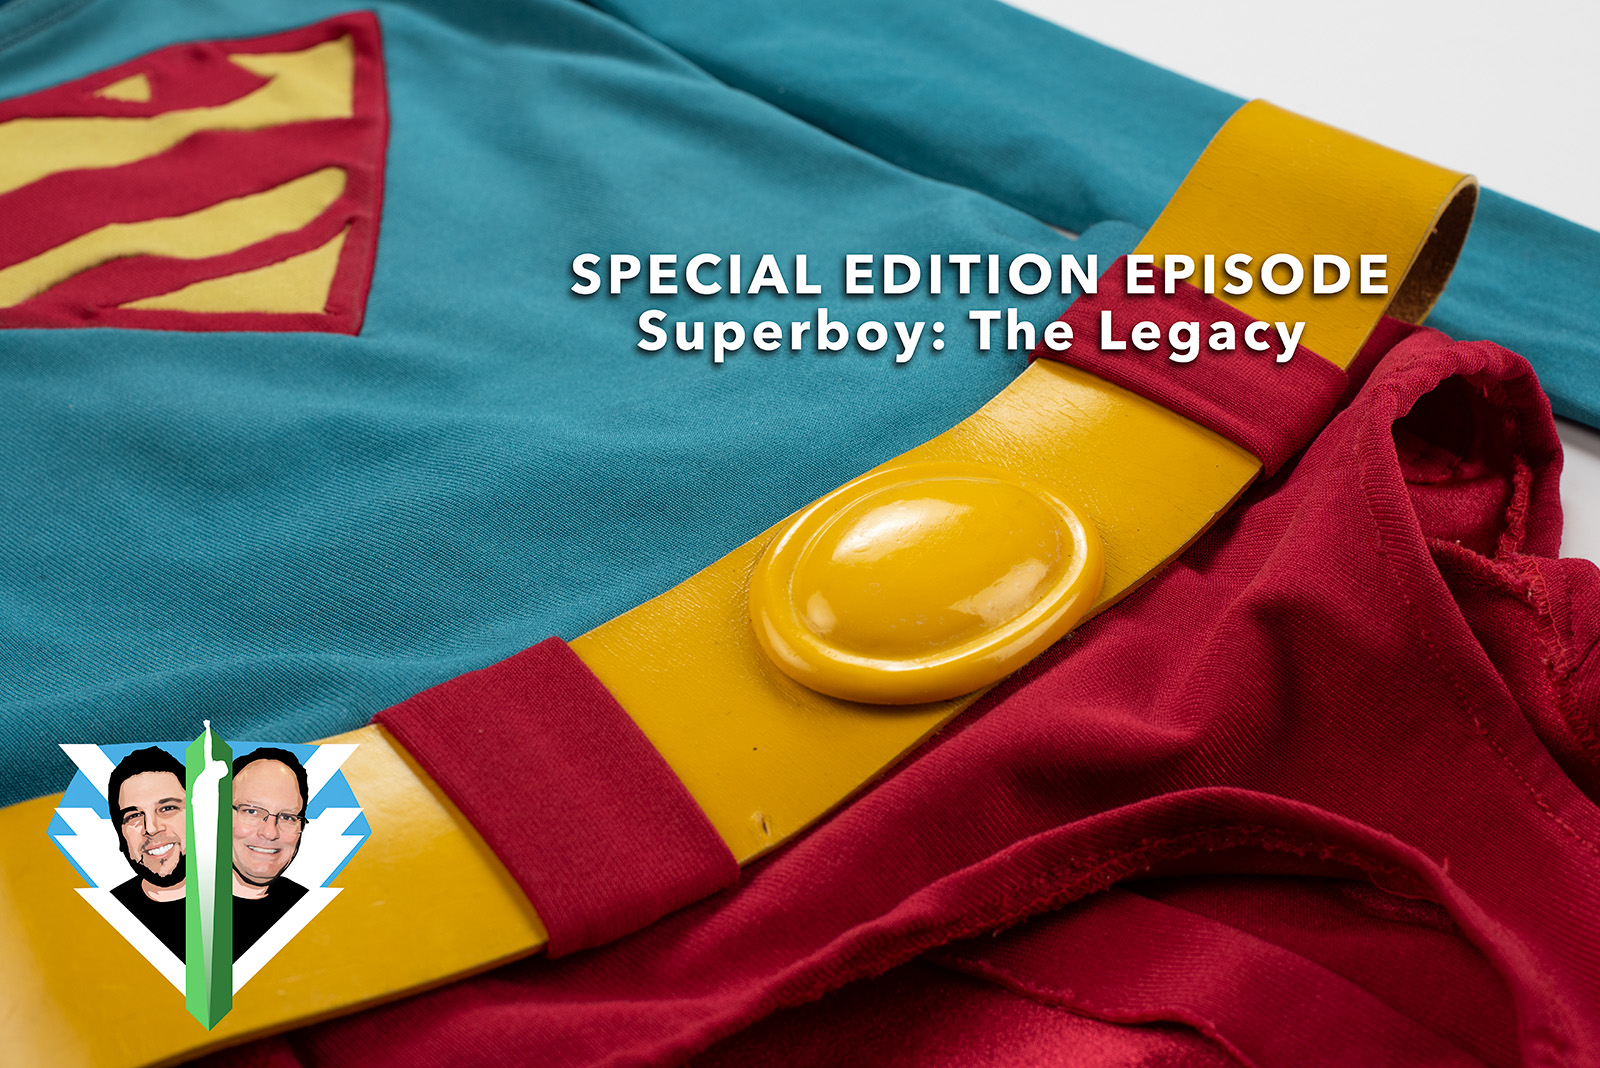 Superboy: The Legacy